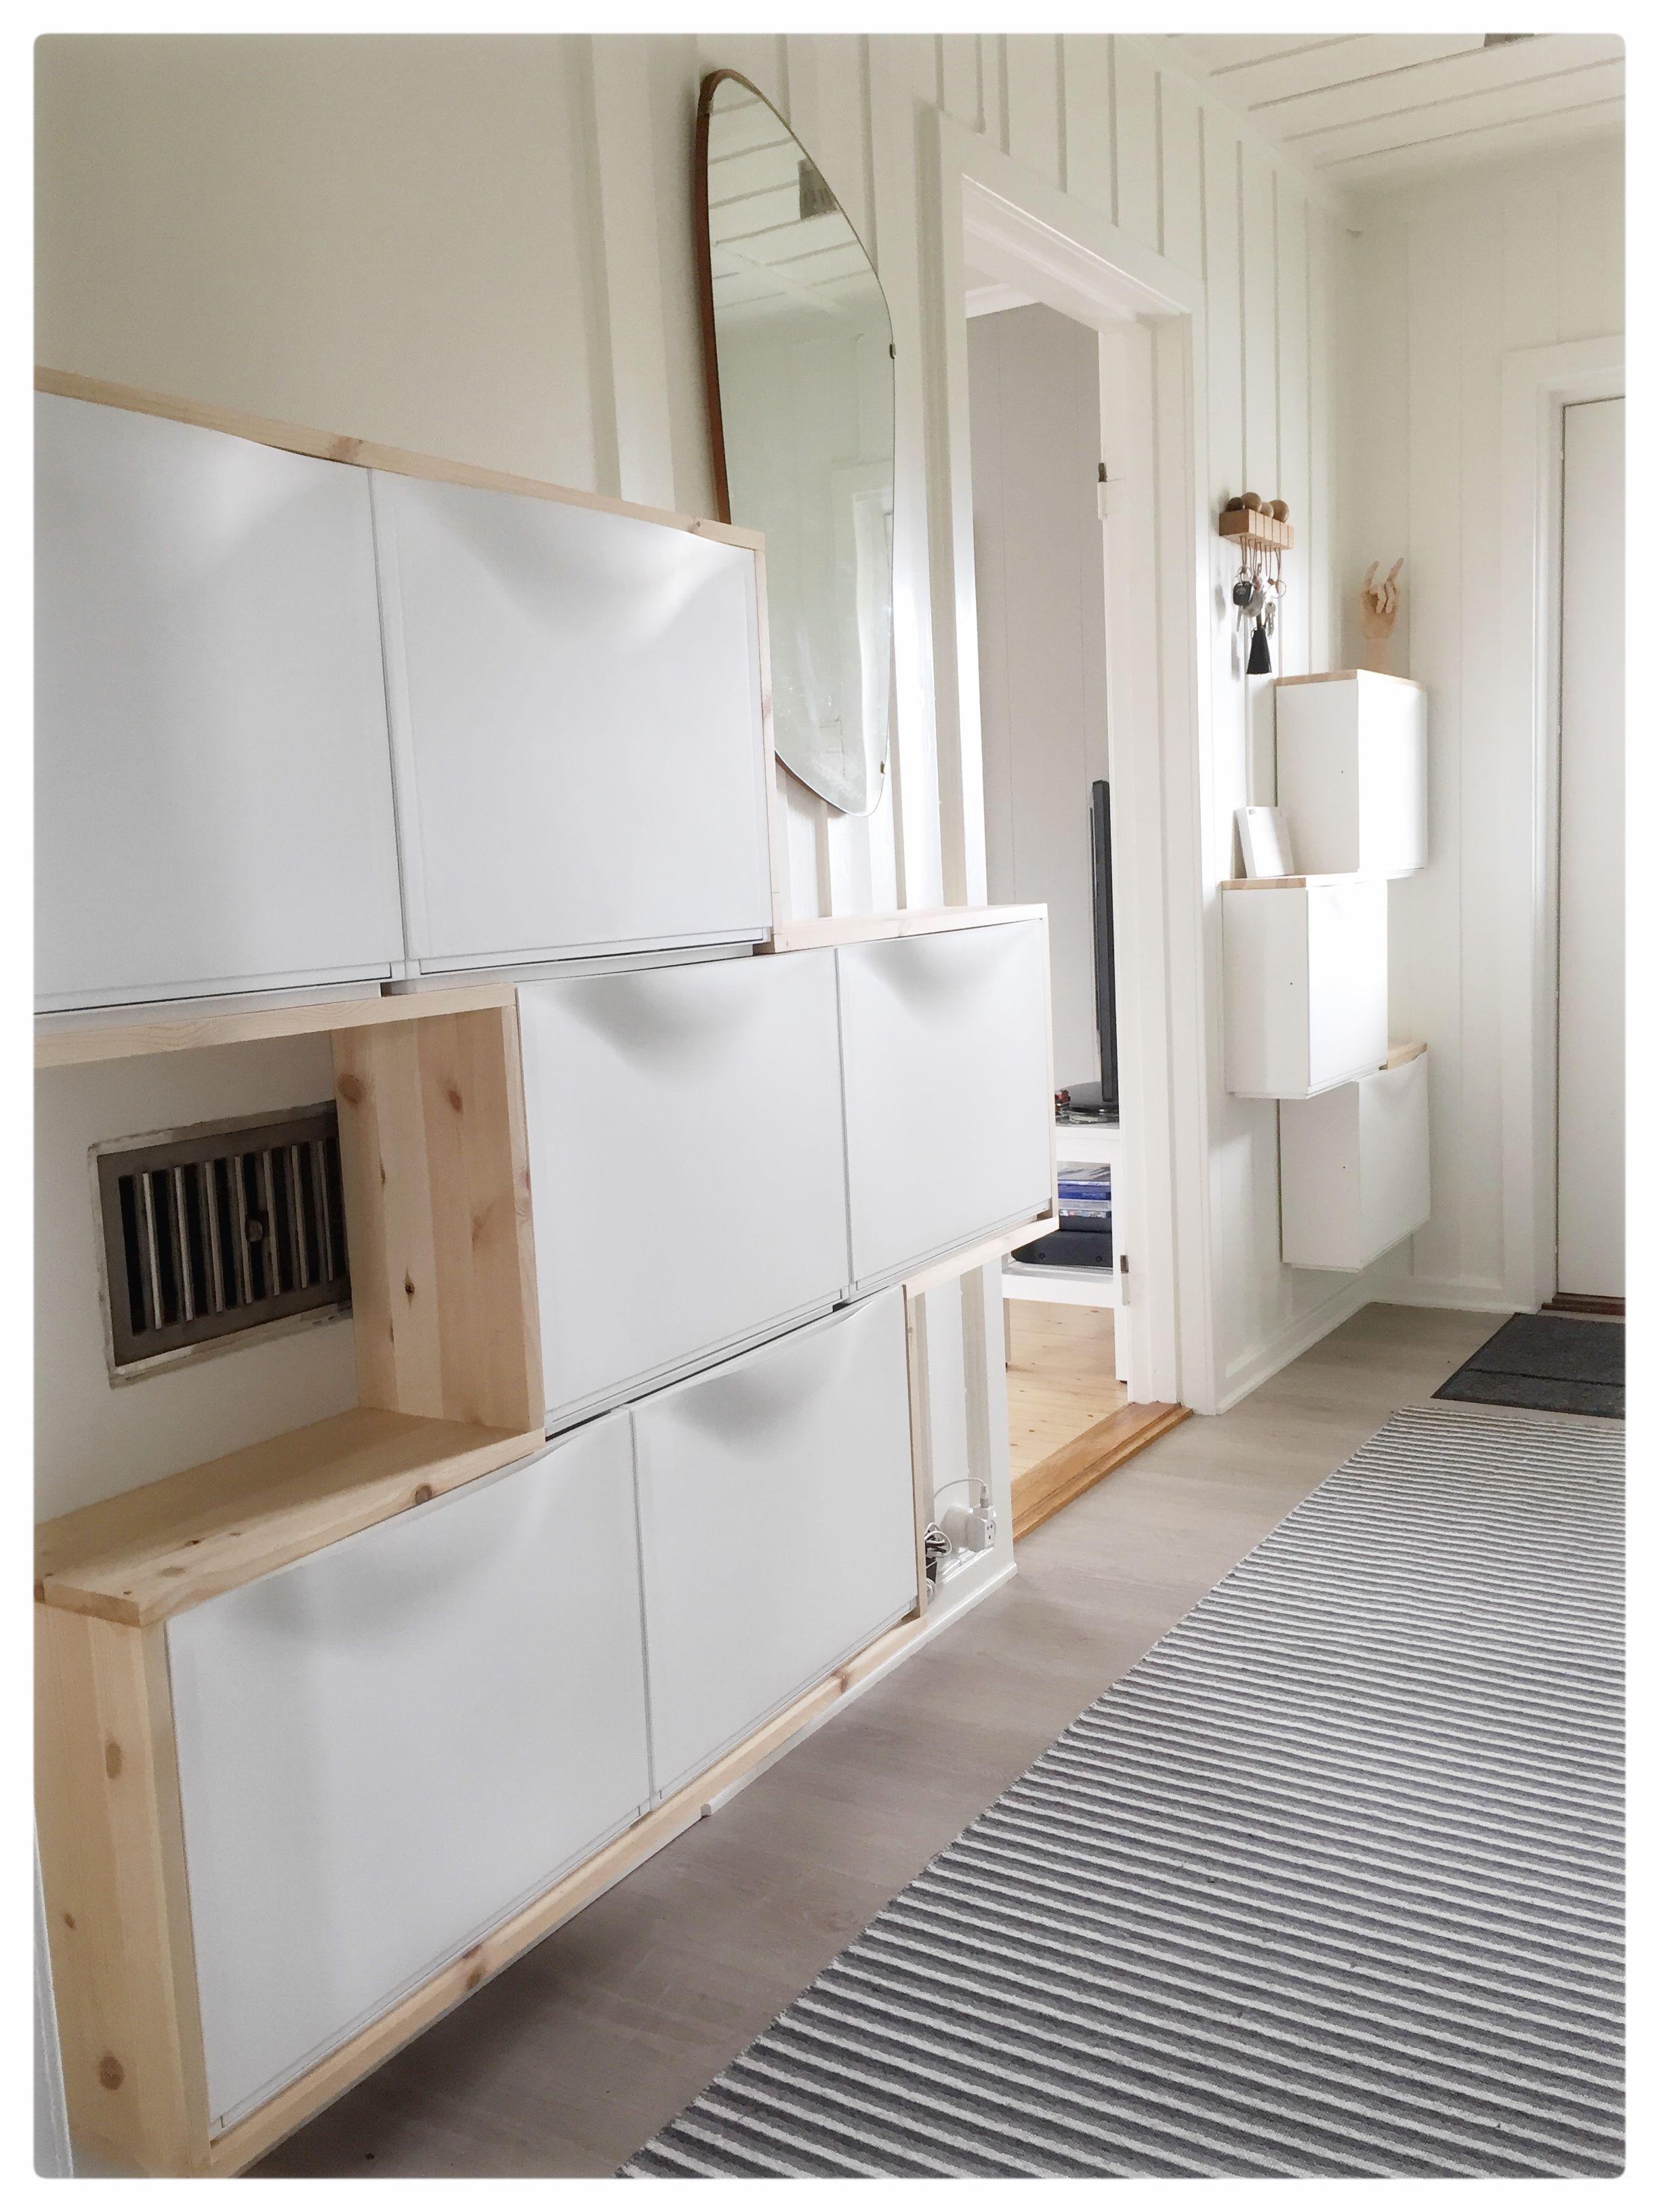 Trones ikea hack Small entry Hallway White& Wood Trones Ikea hacks Pinterest